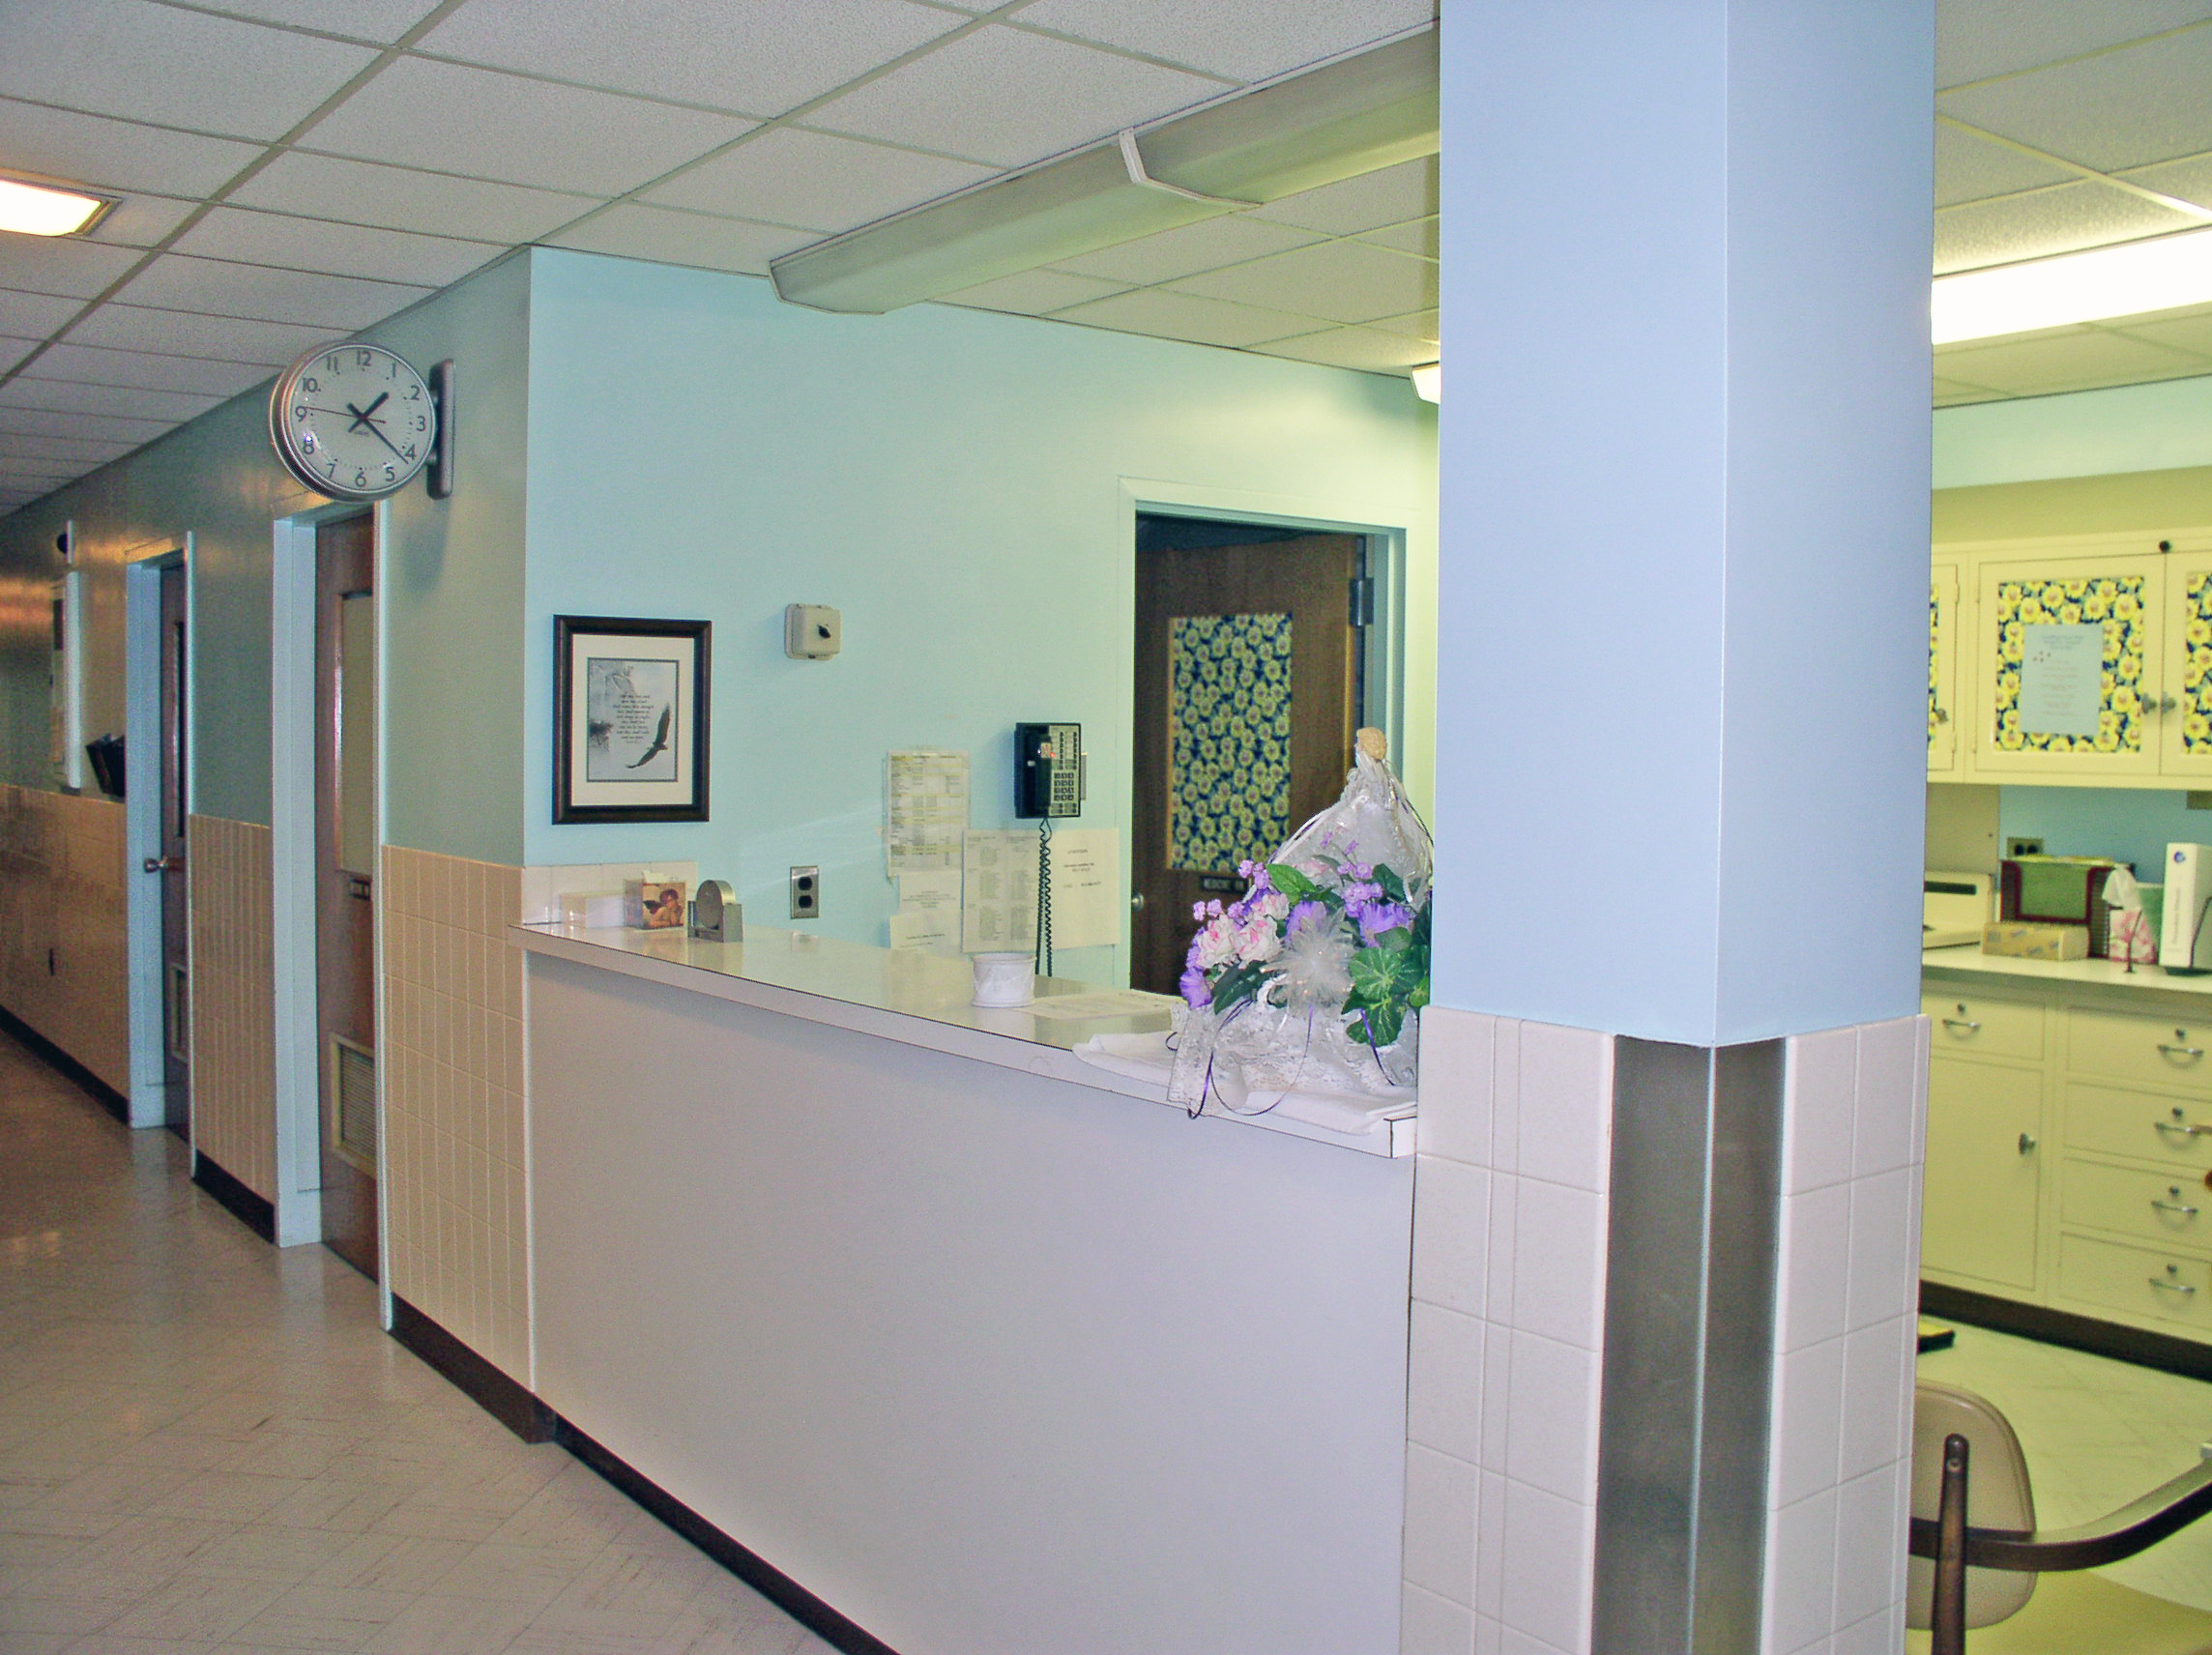 Existing Nursing Station